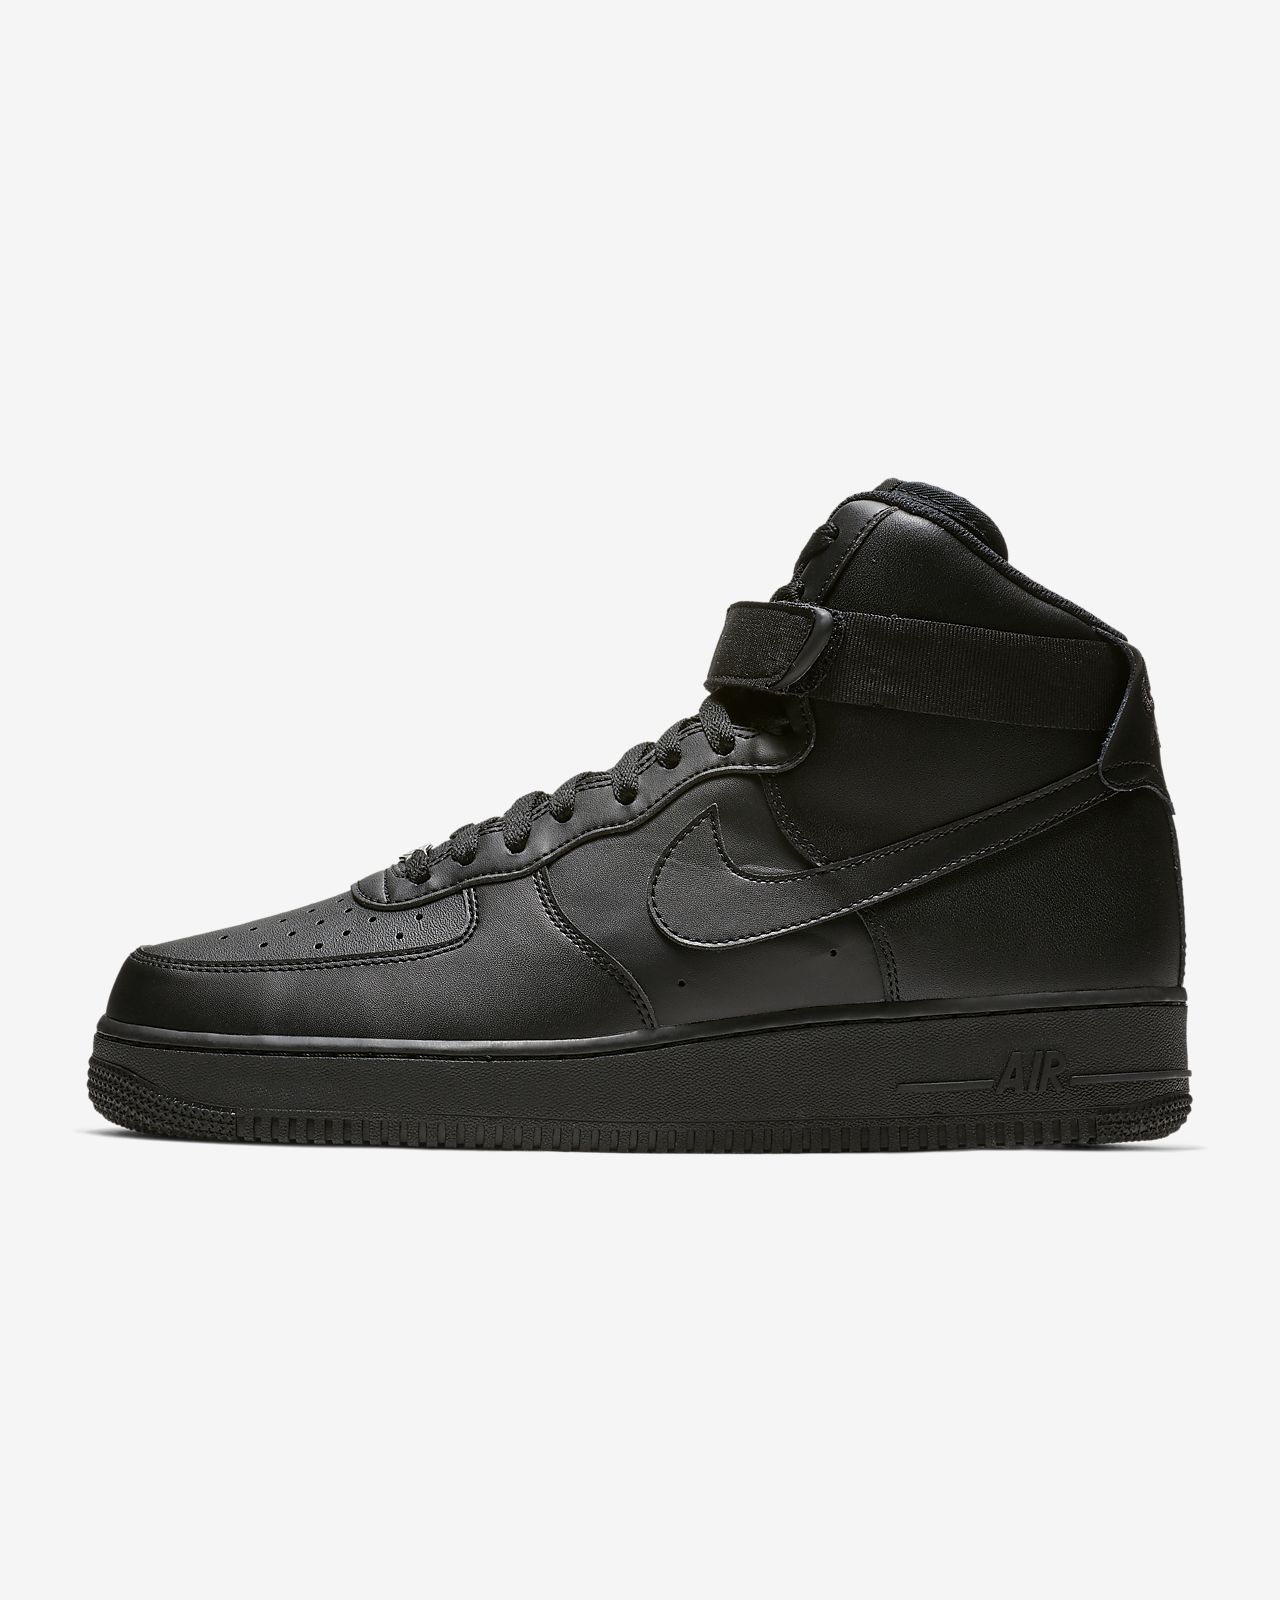 affcba76b37d Nike Air Force 1 High 07 Men s Shoe. Nike.com